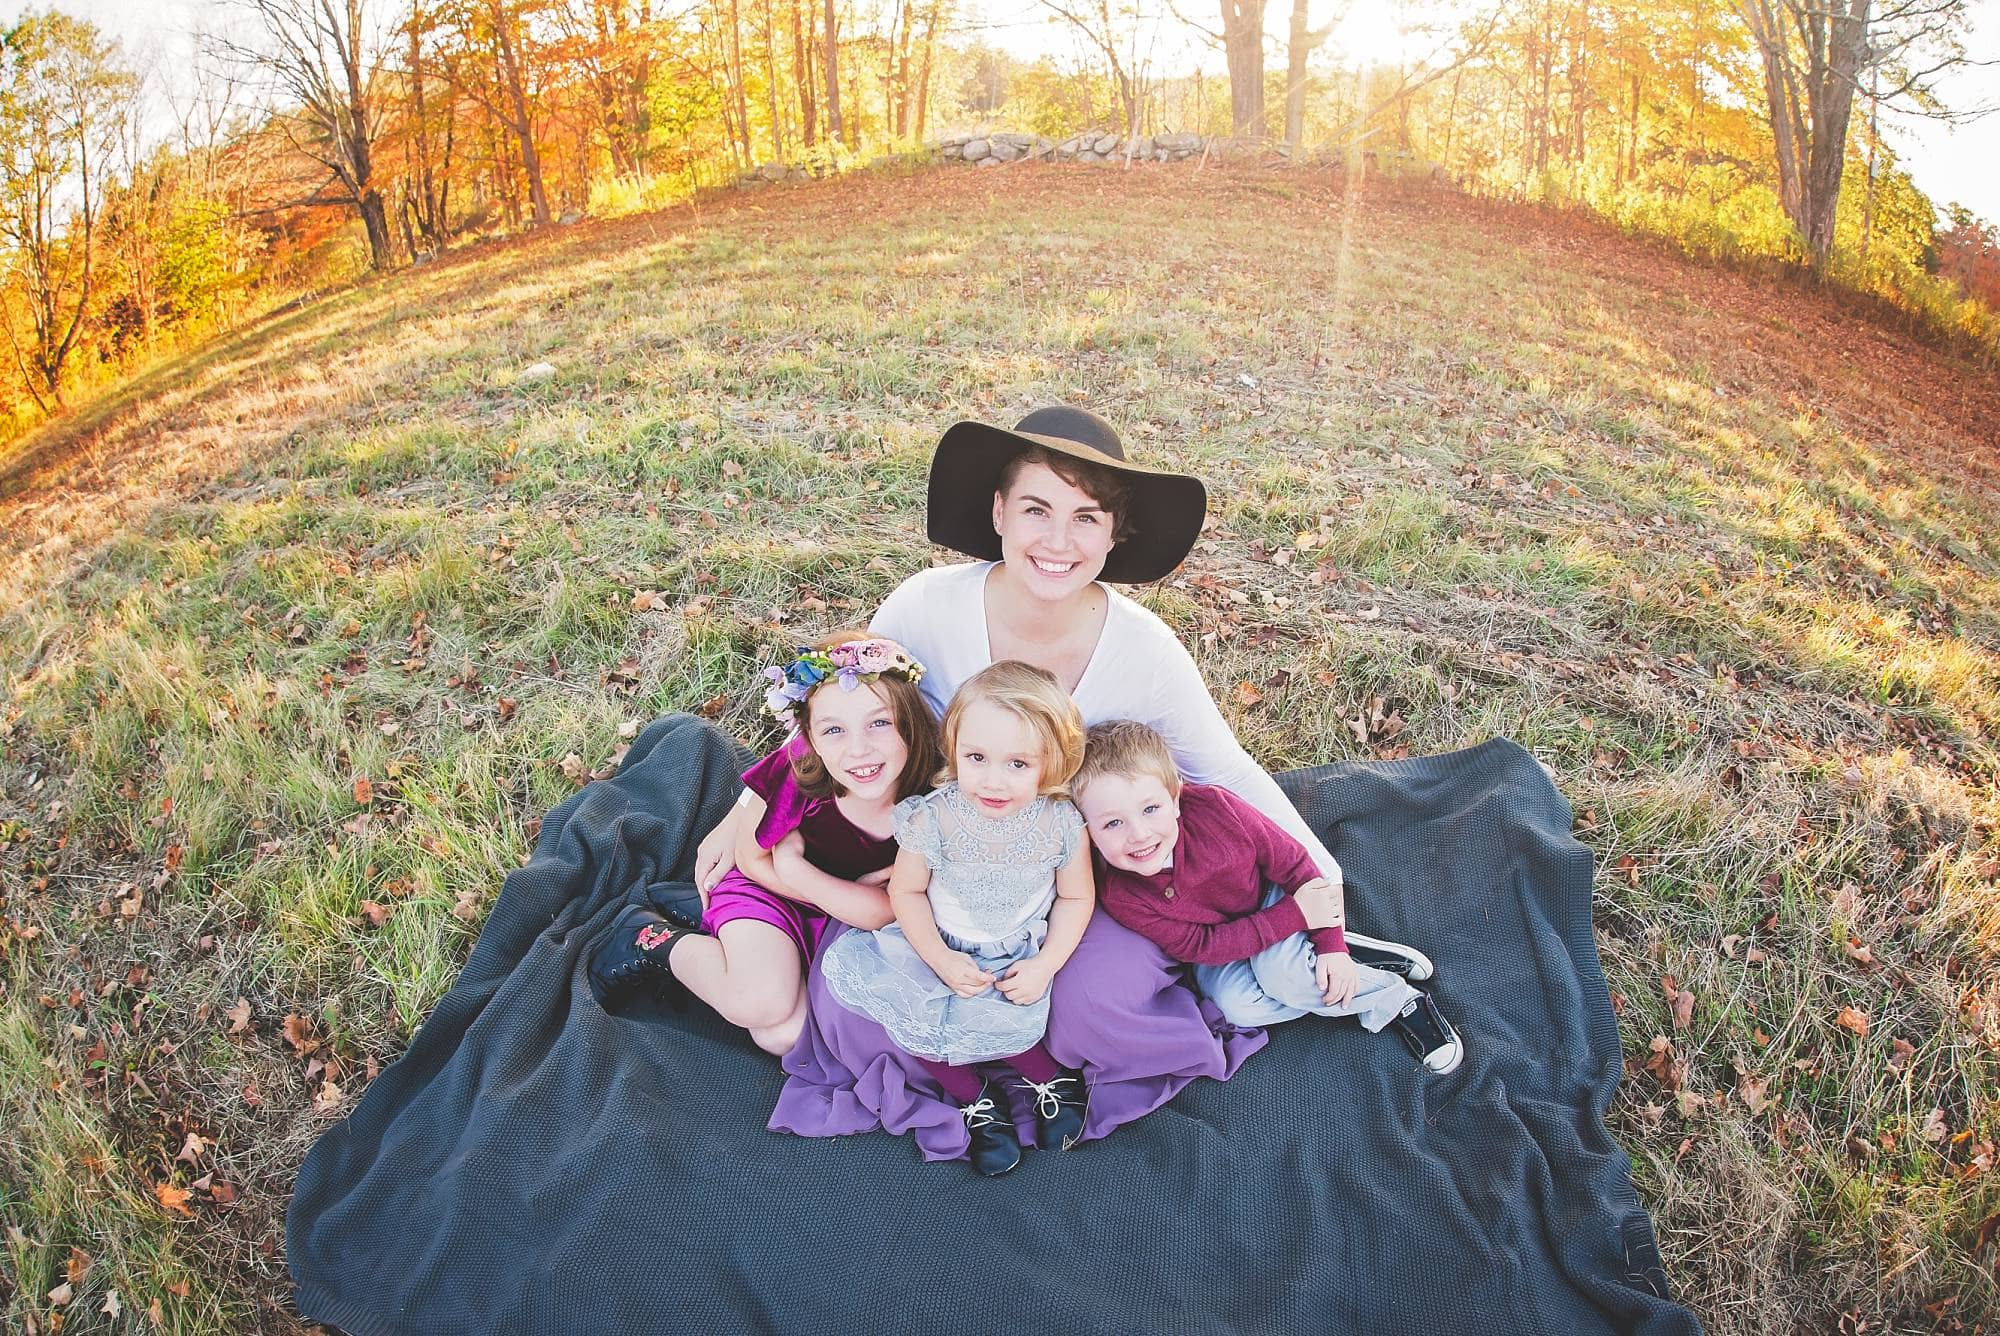 Mom sitting with her 3 kids on a blanket with fall colors